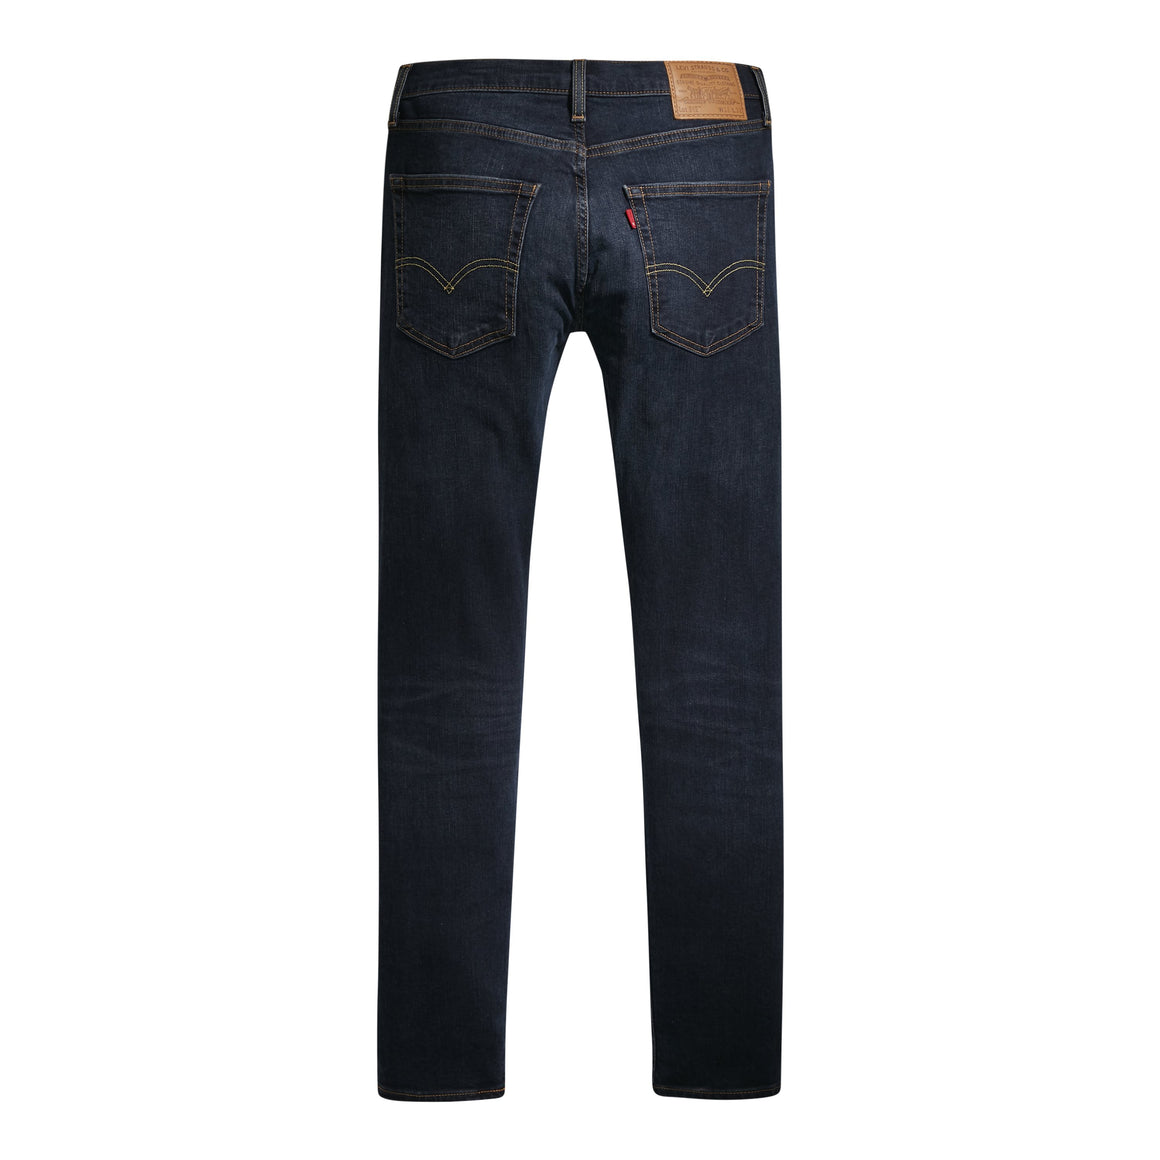 512 Slim Taper Jean for Men in Shake The Boat ADV